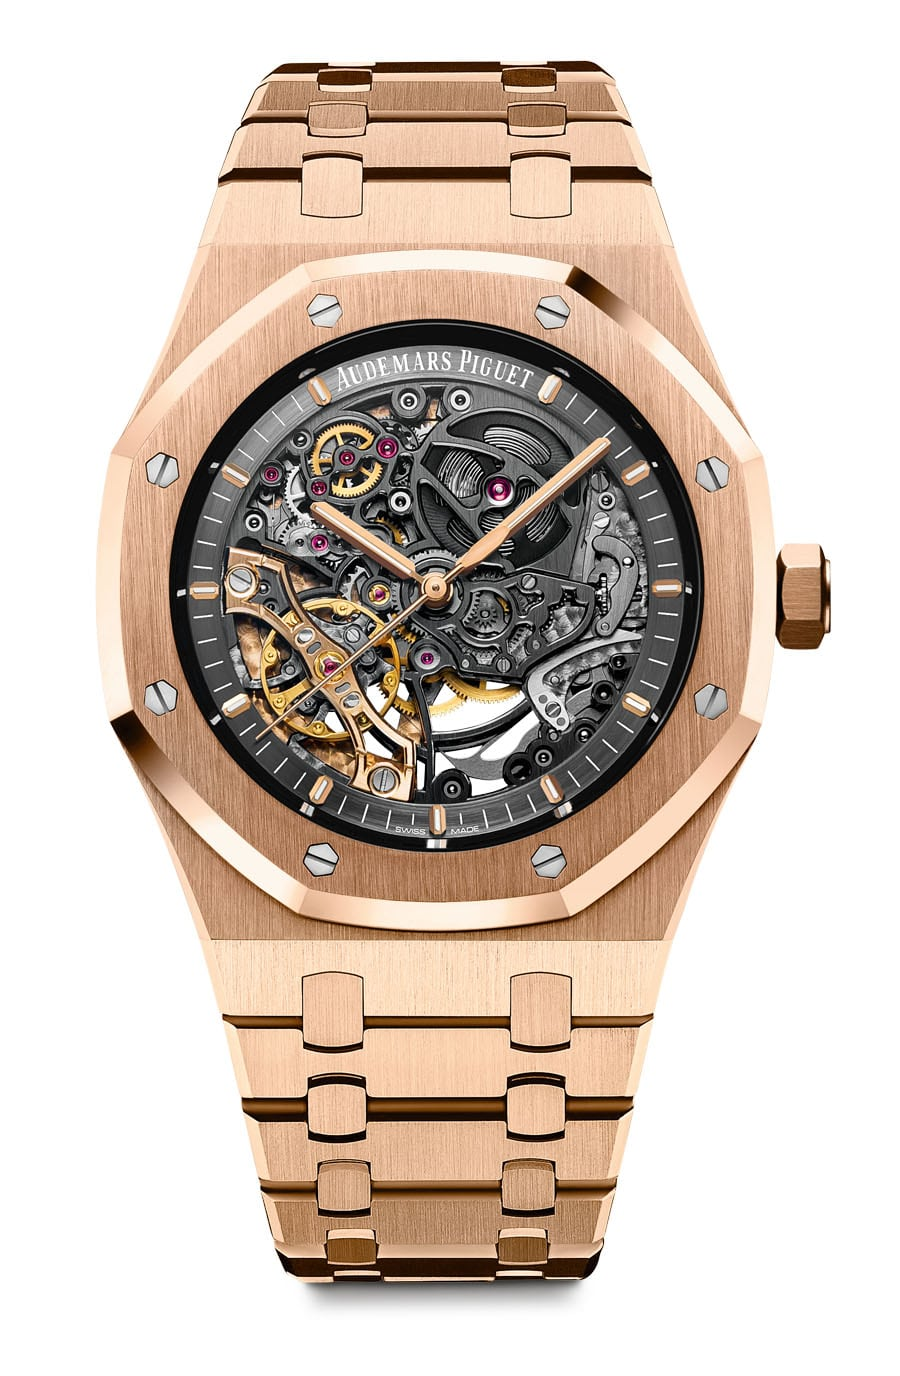 Audemars Piguet: Royal Oak Doppelte Unruh Squelette in Roségold, Referenz 15407OR.OO.1220OR.01